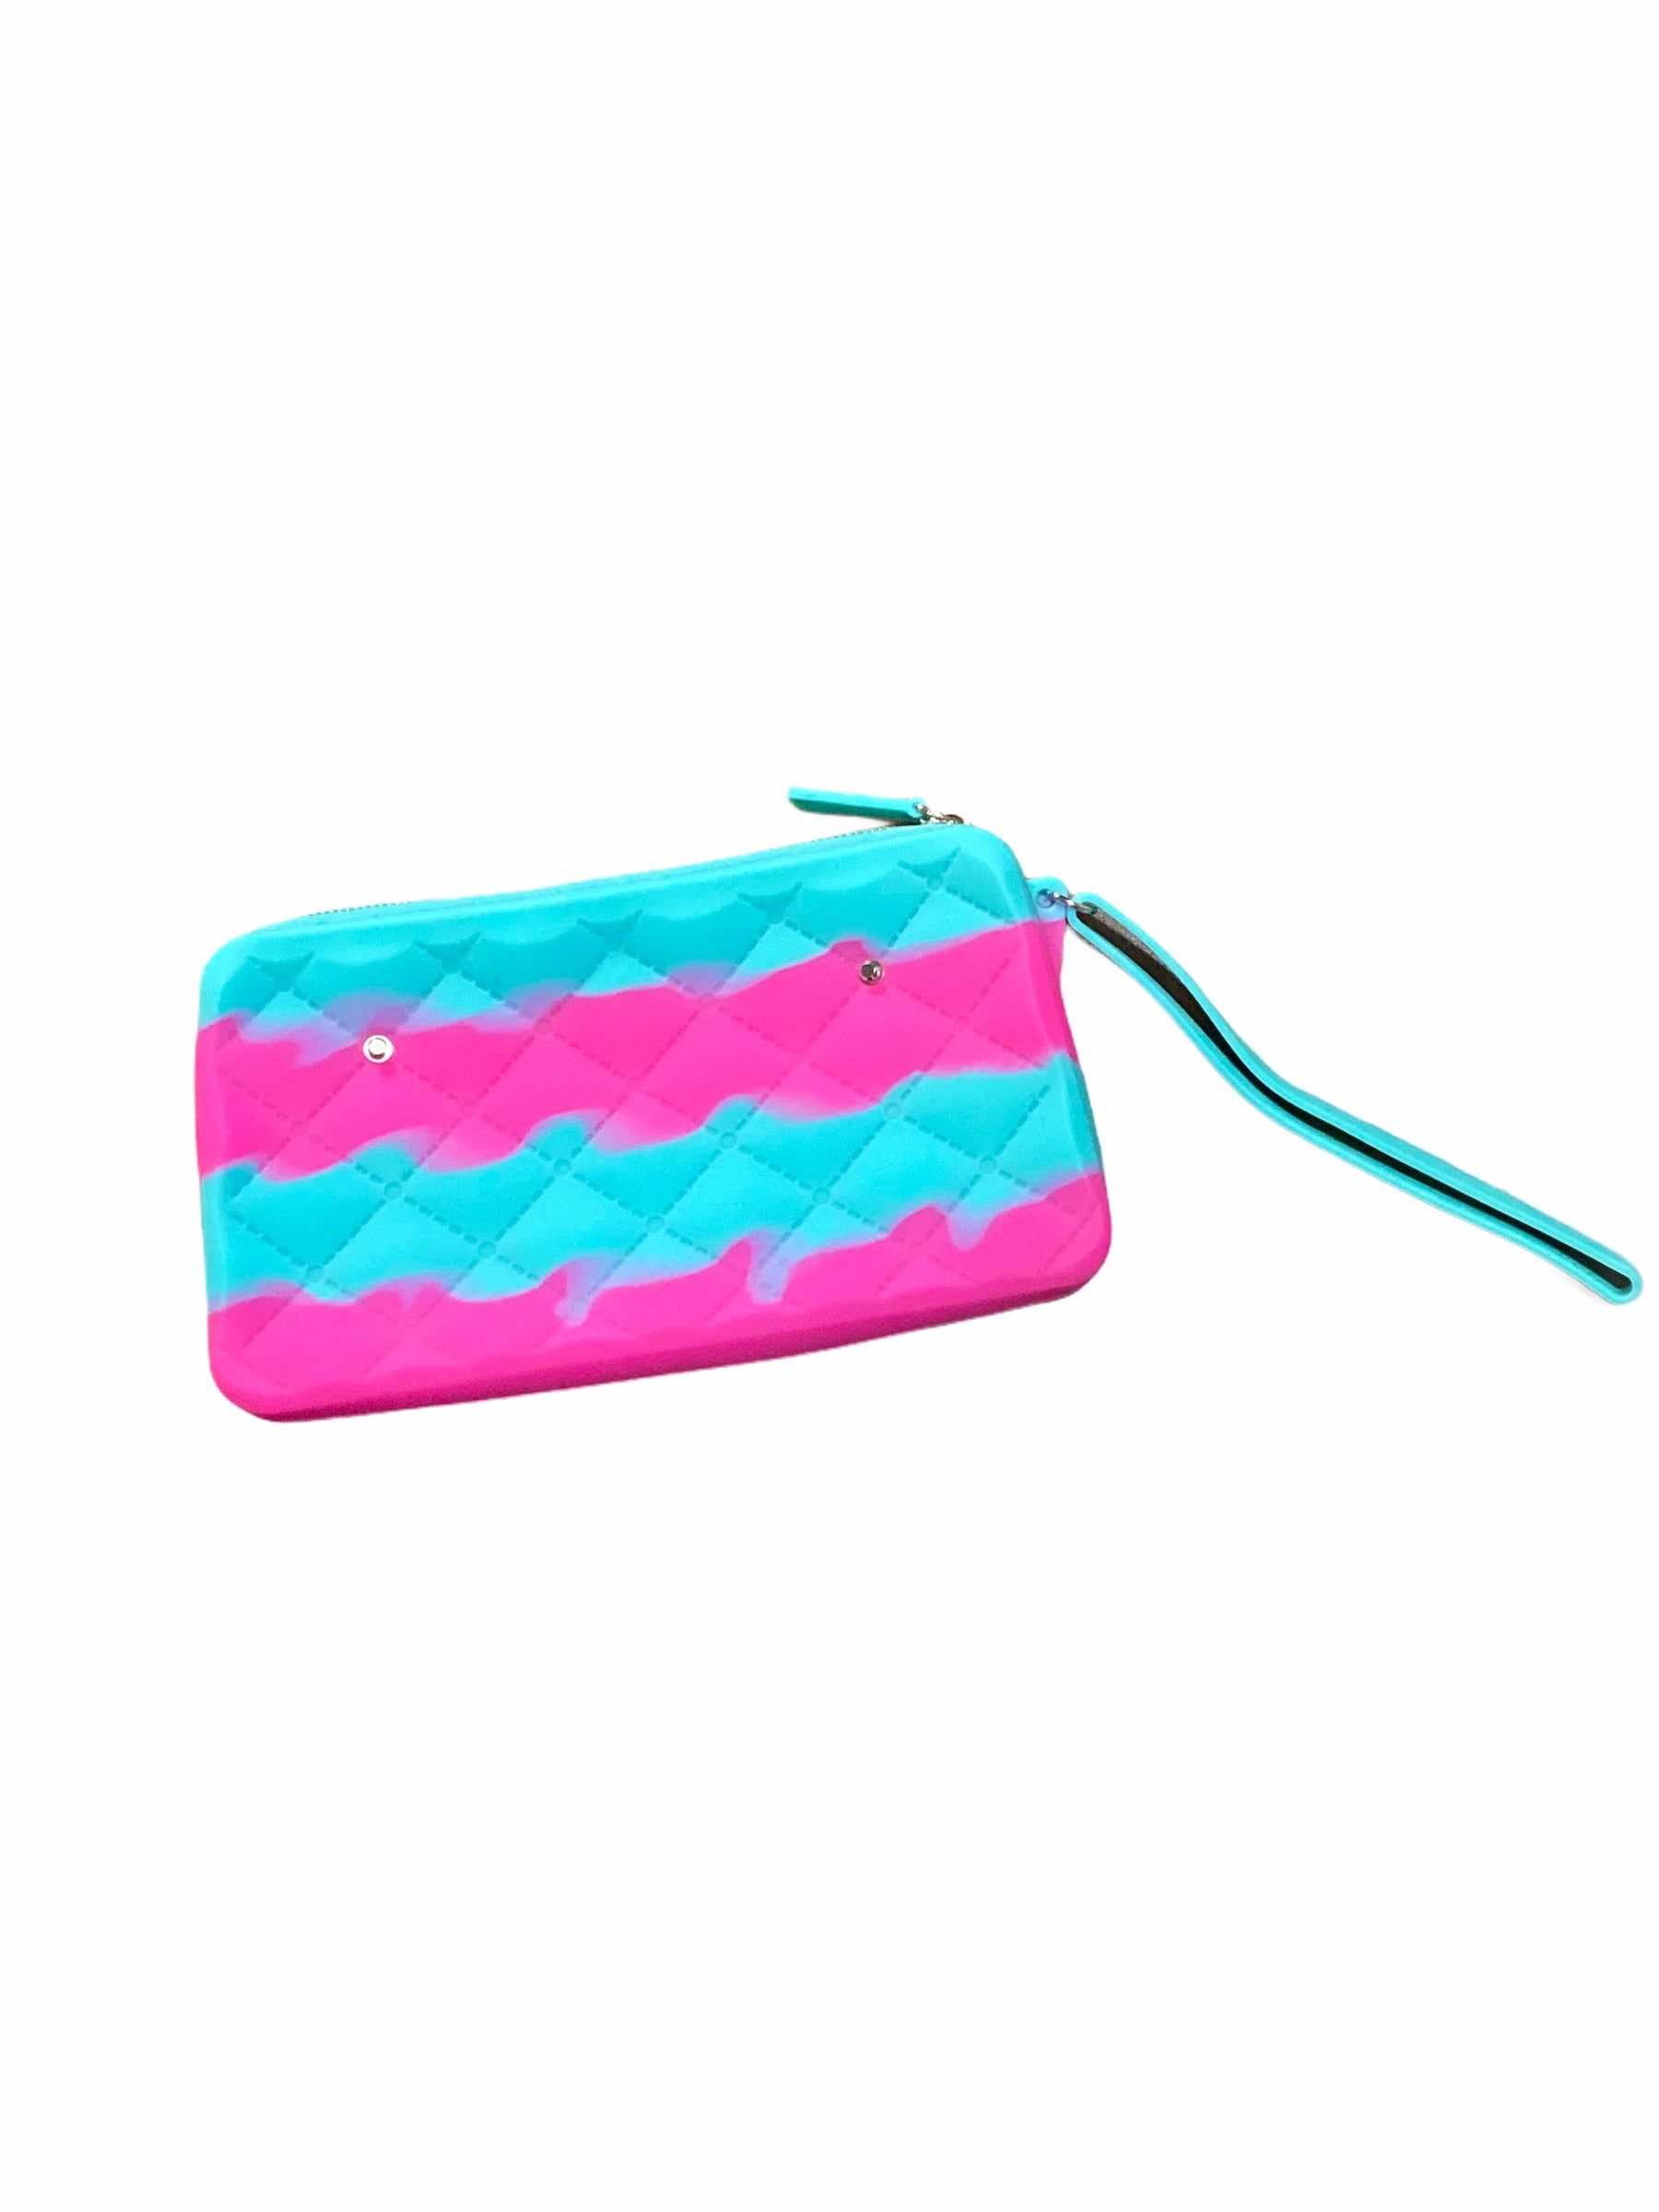 Gummy Bag Pink & Teal Purse